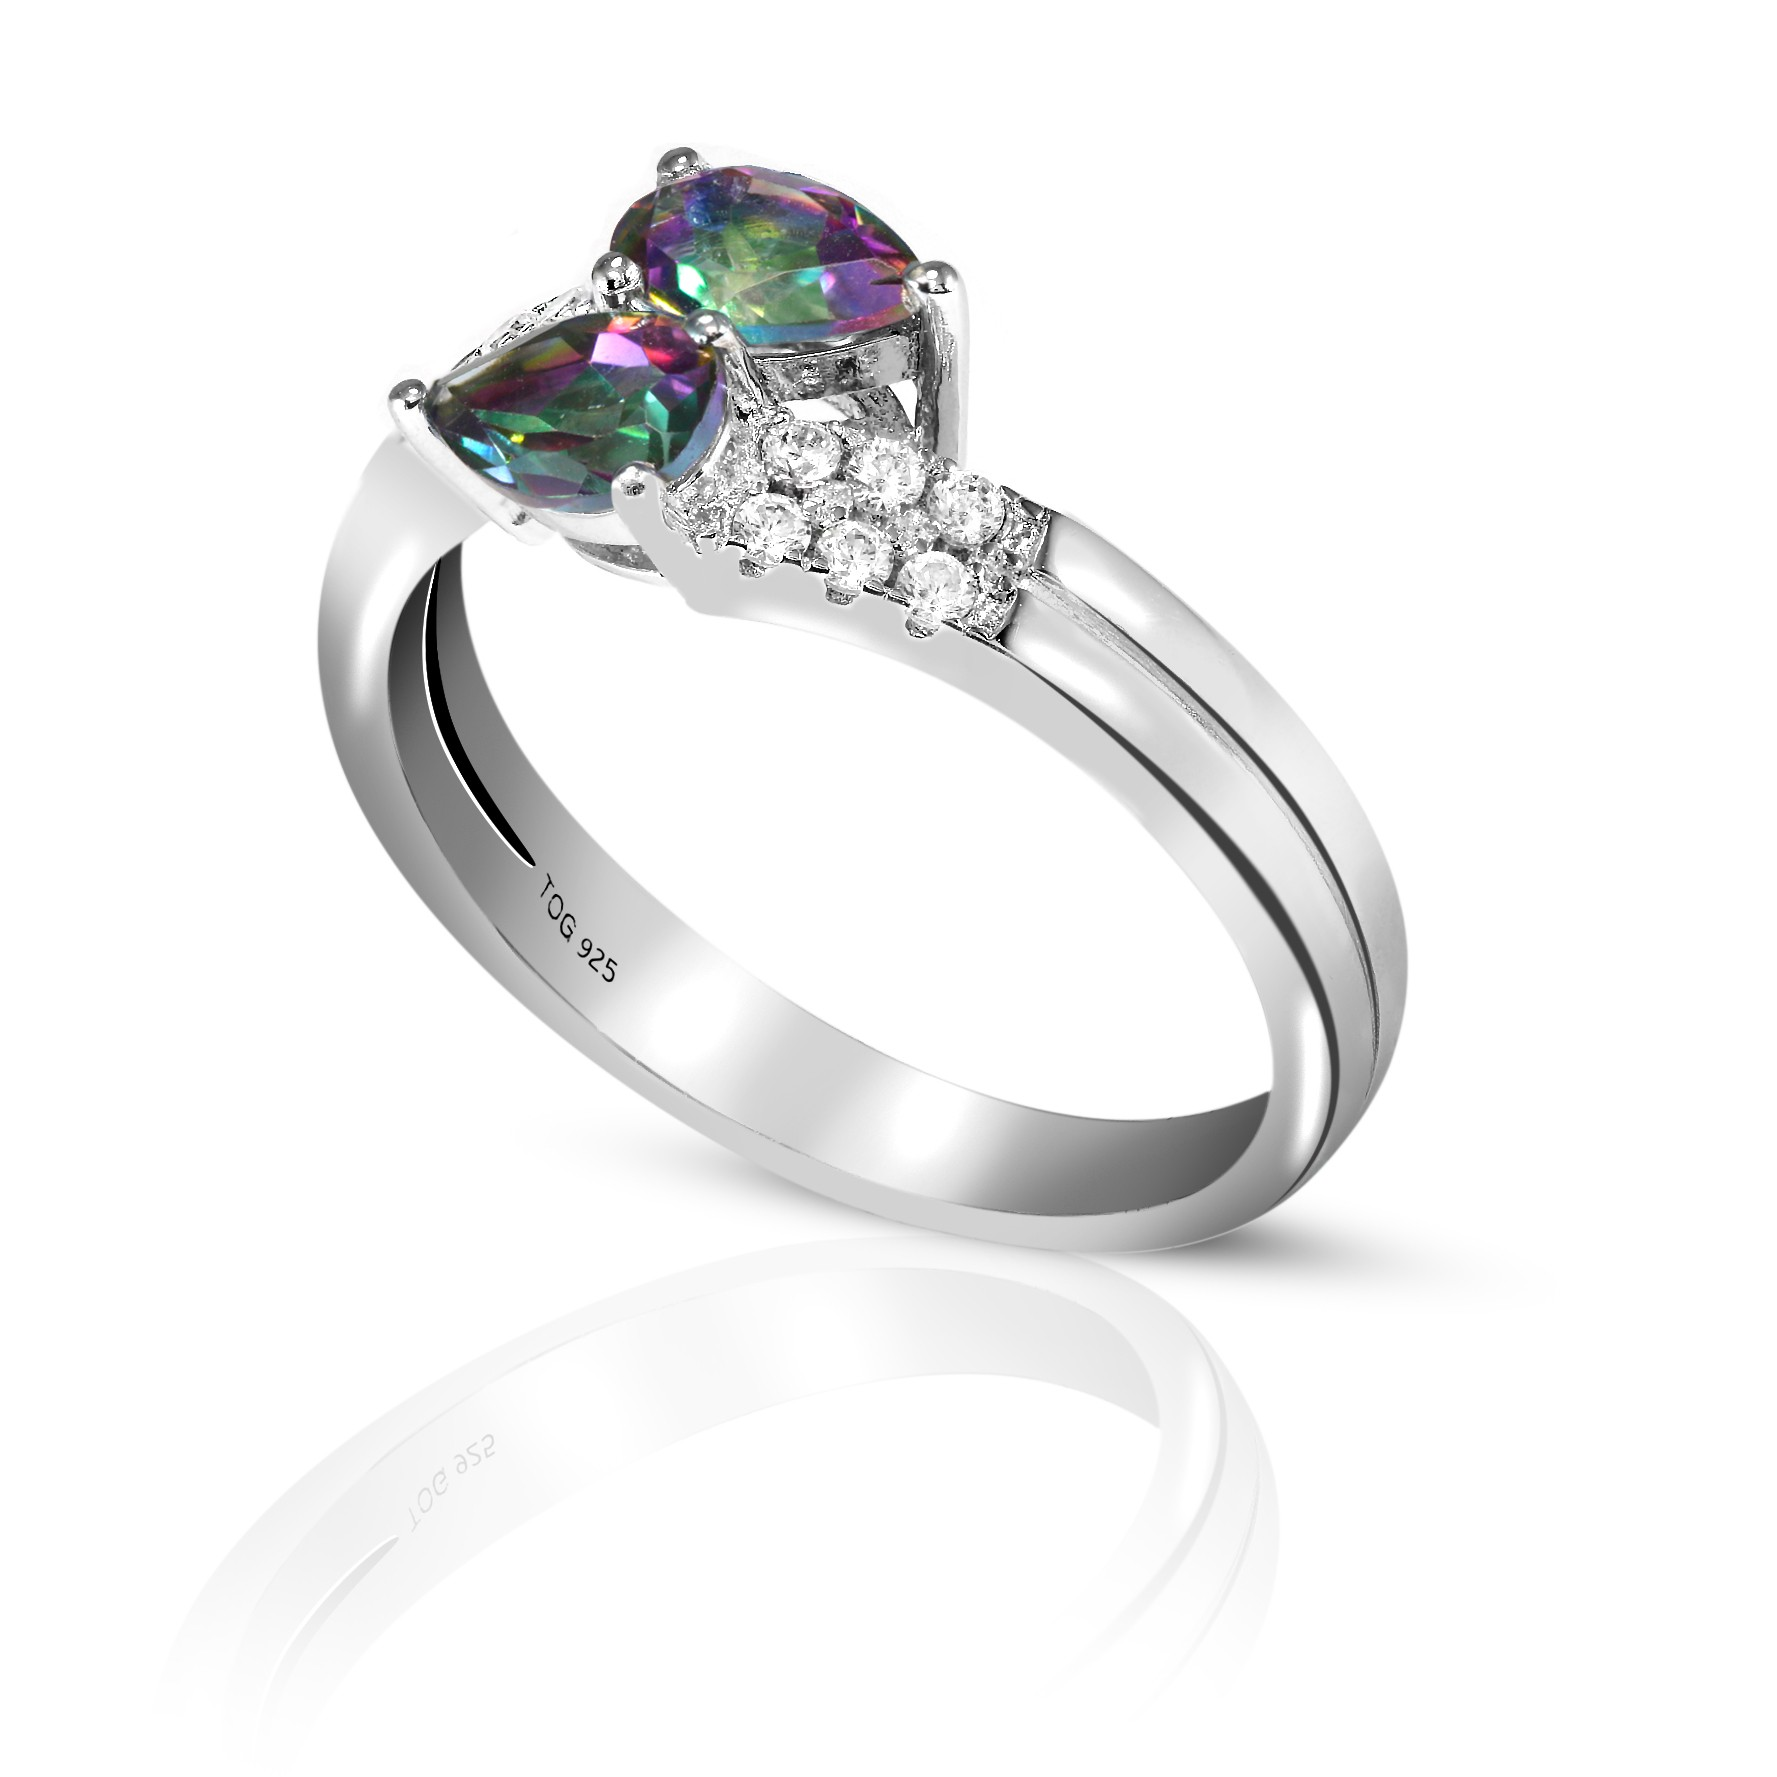 Captivating Rainbow and White Topaz Ring Set in Sterling Silver